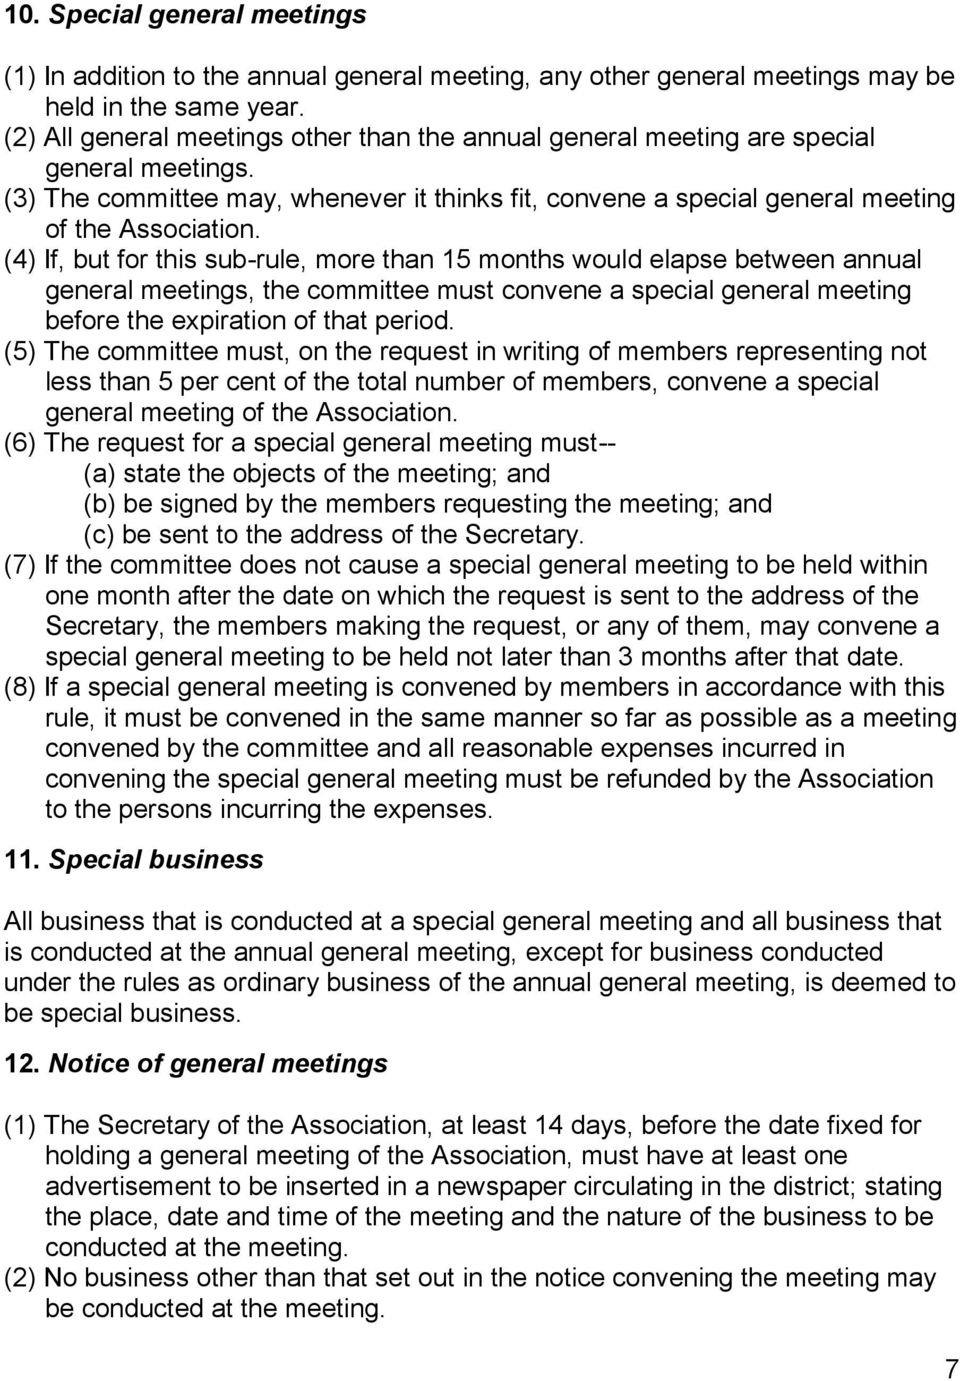 (4) If, but for this sub-rule, more than 15 months would elapse between annual general meetings, the committee must convene a special general meeting before the expiration of that period.